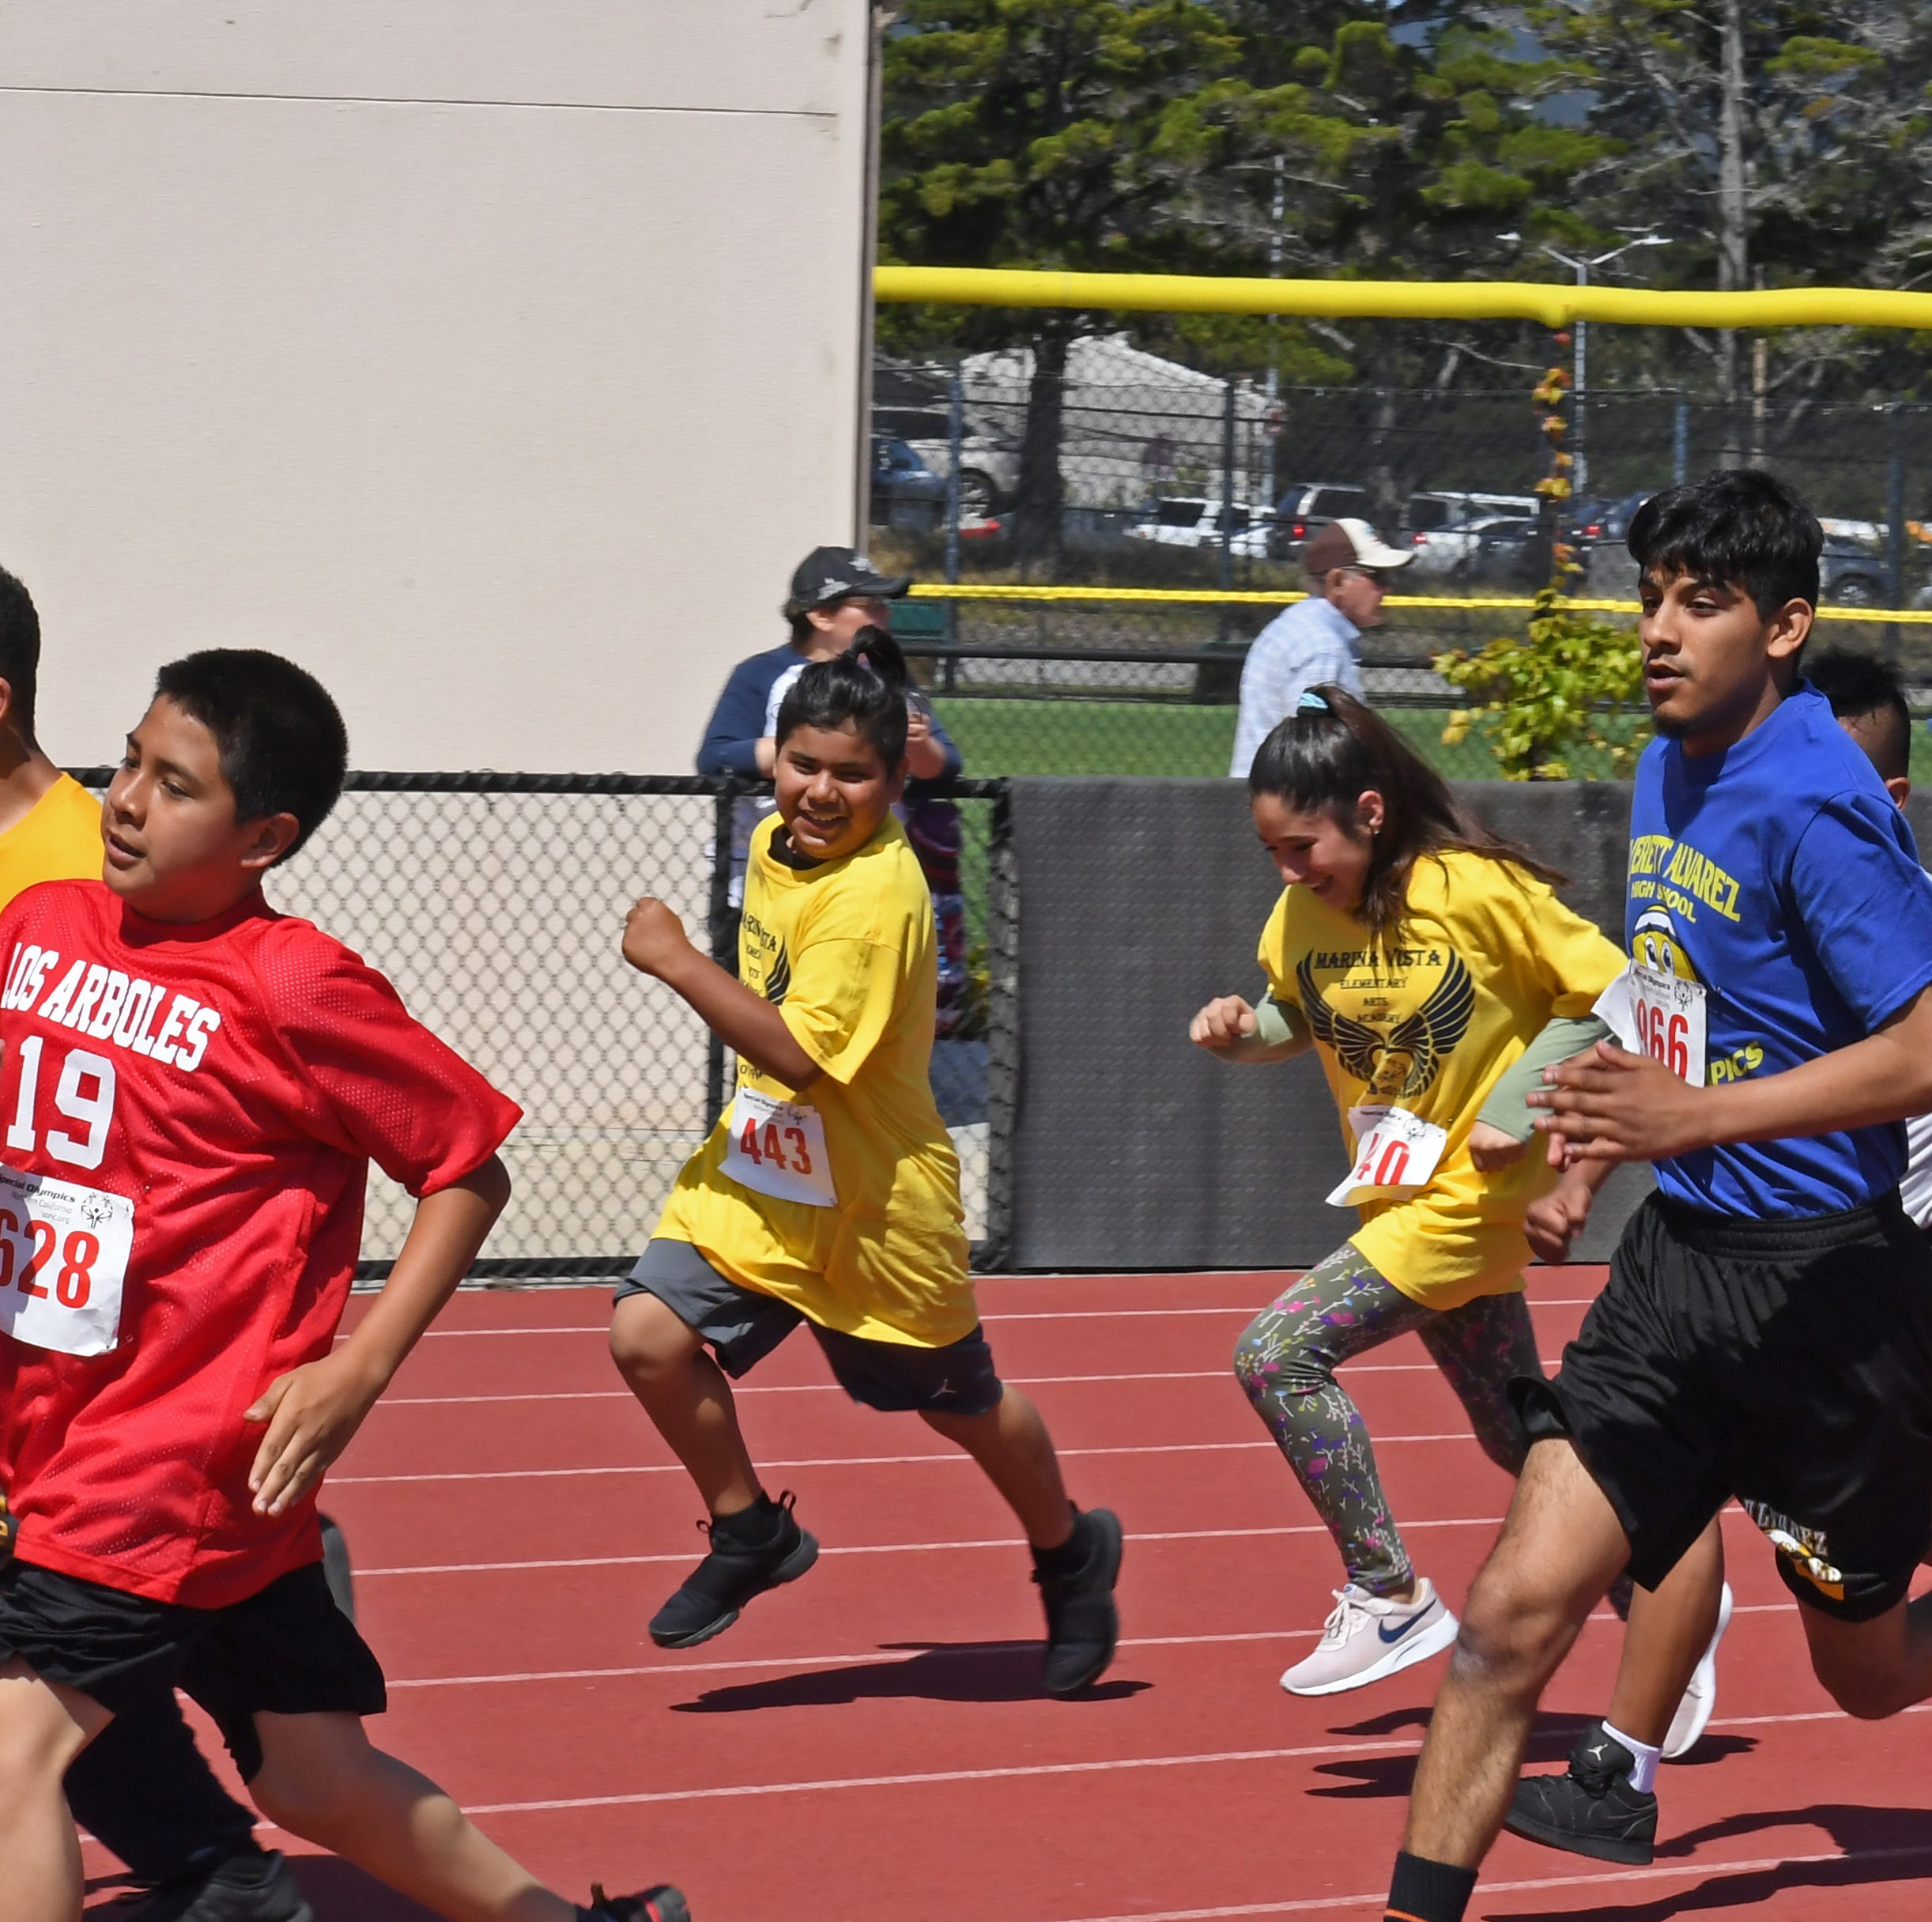 Monterey County Special Olympics athletes bond with other students at annual track meet